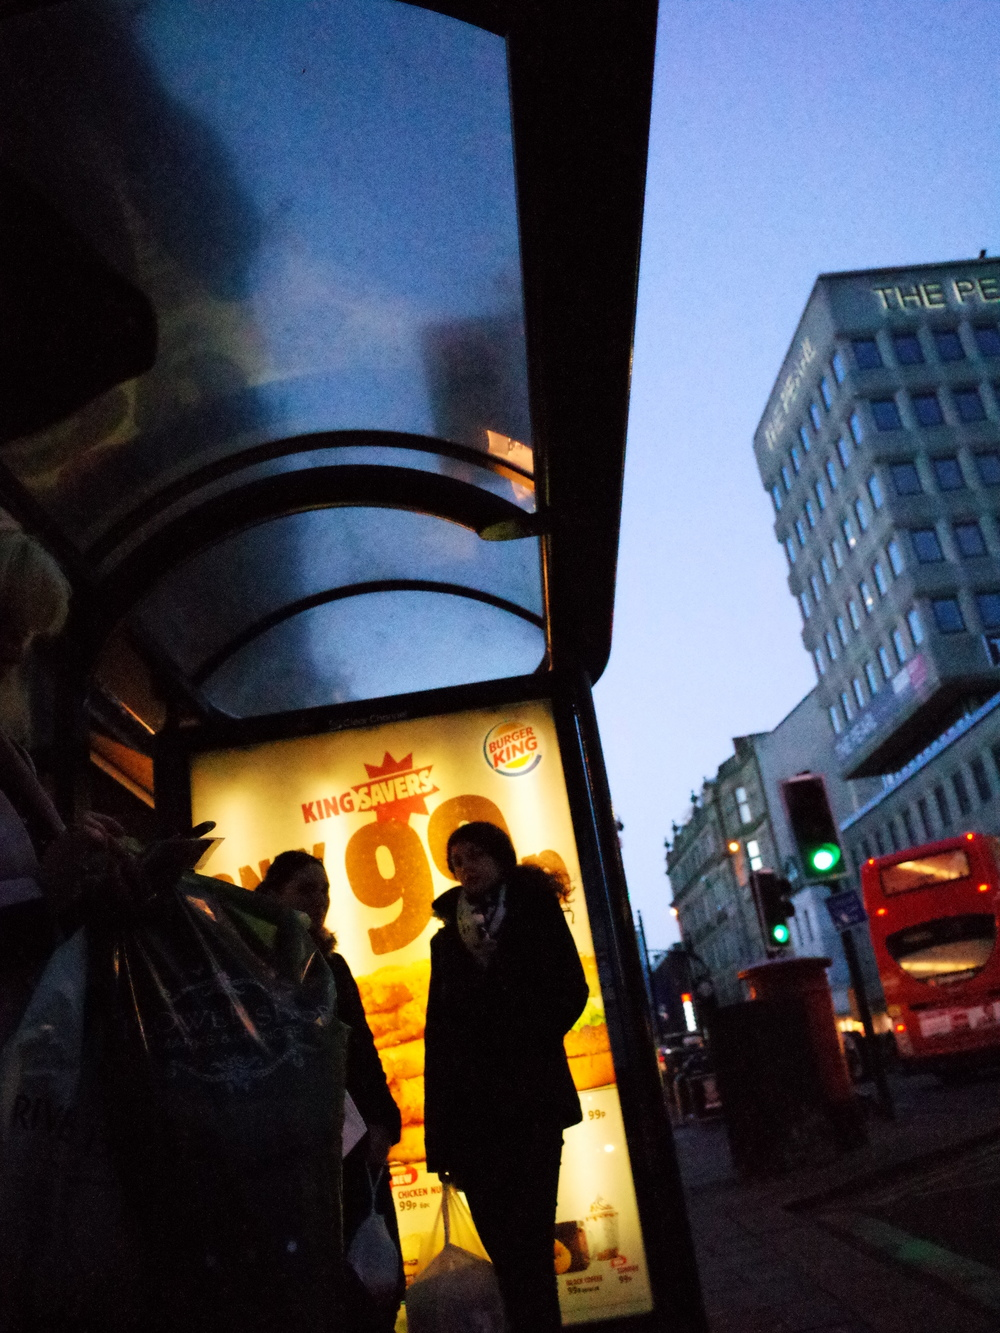 Bus stop. ISO 12,800